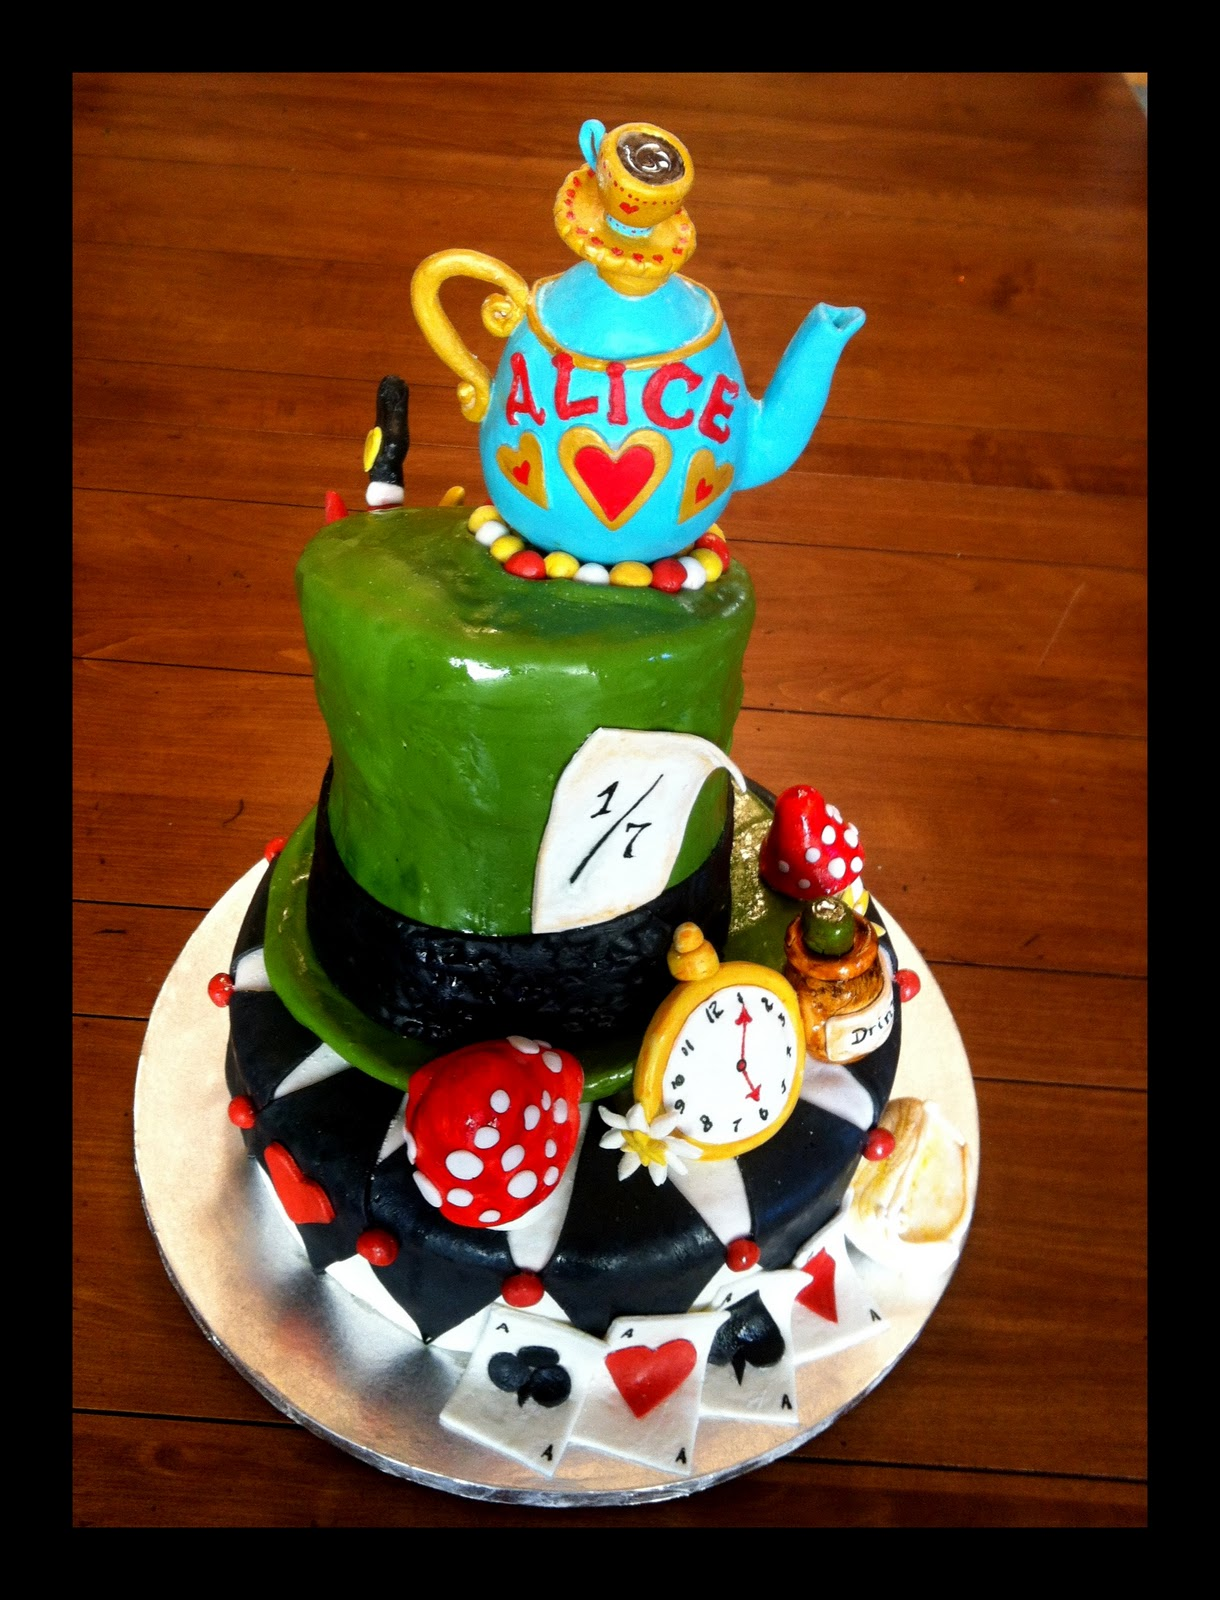 Hush Hush Sweet Charlotte Cakes ALICE IN WONDERLAND CAKE